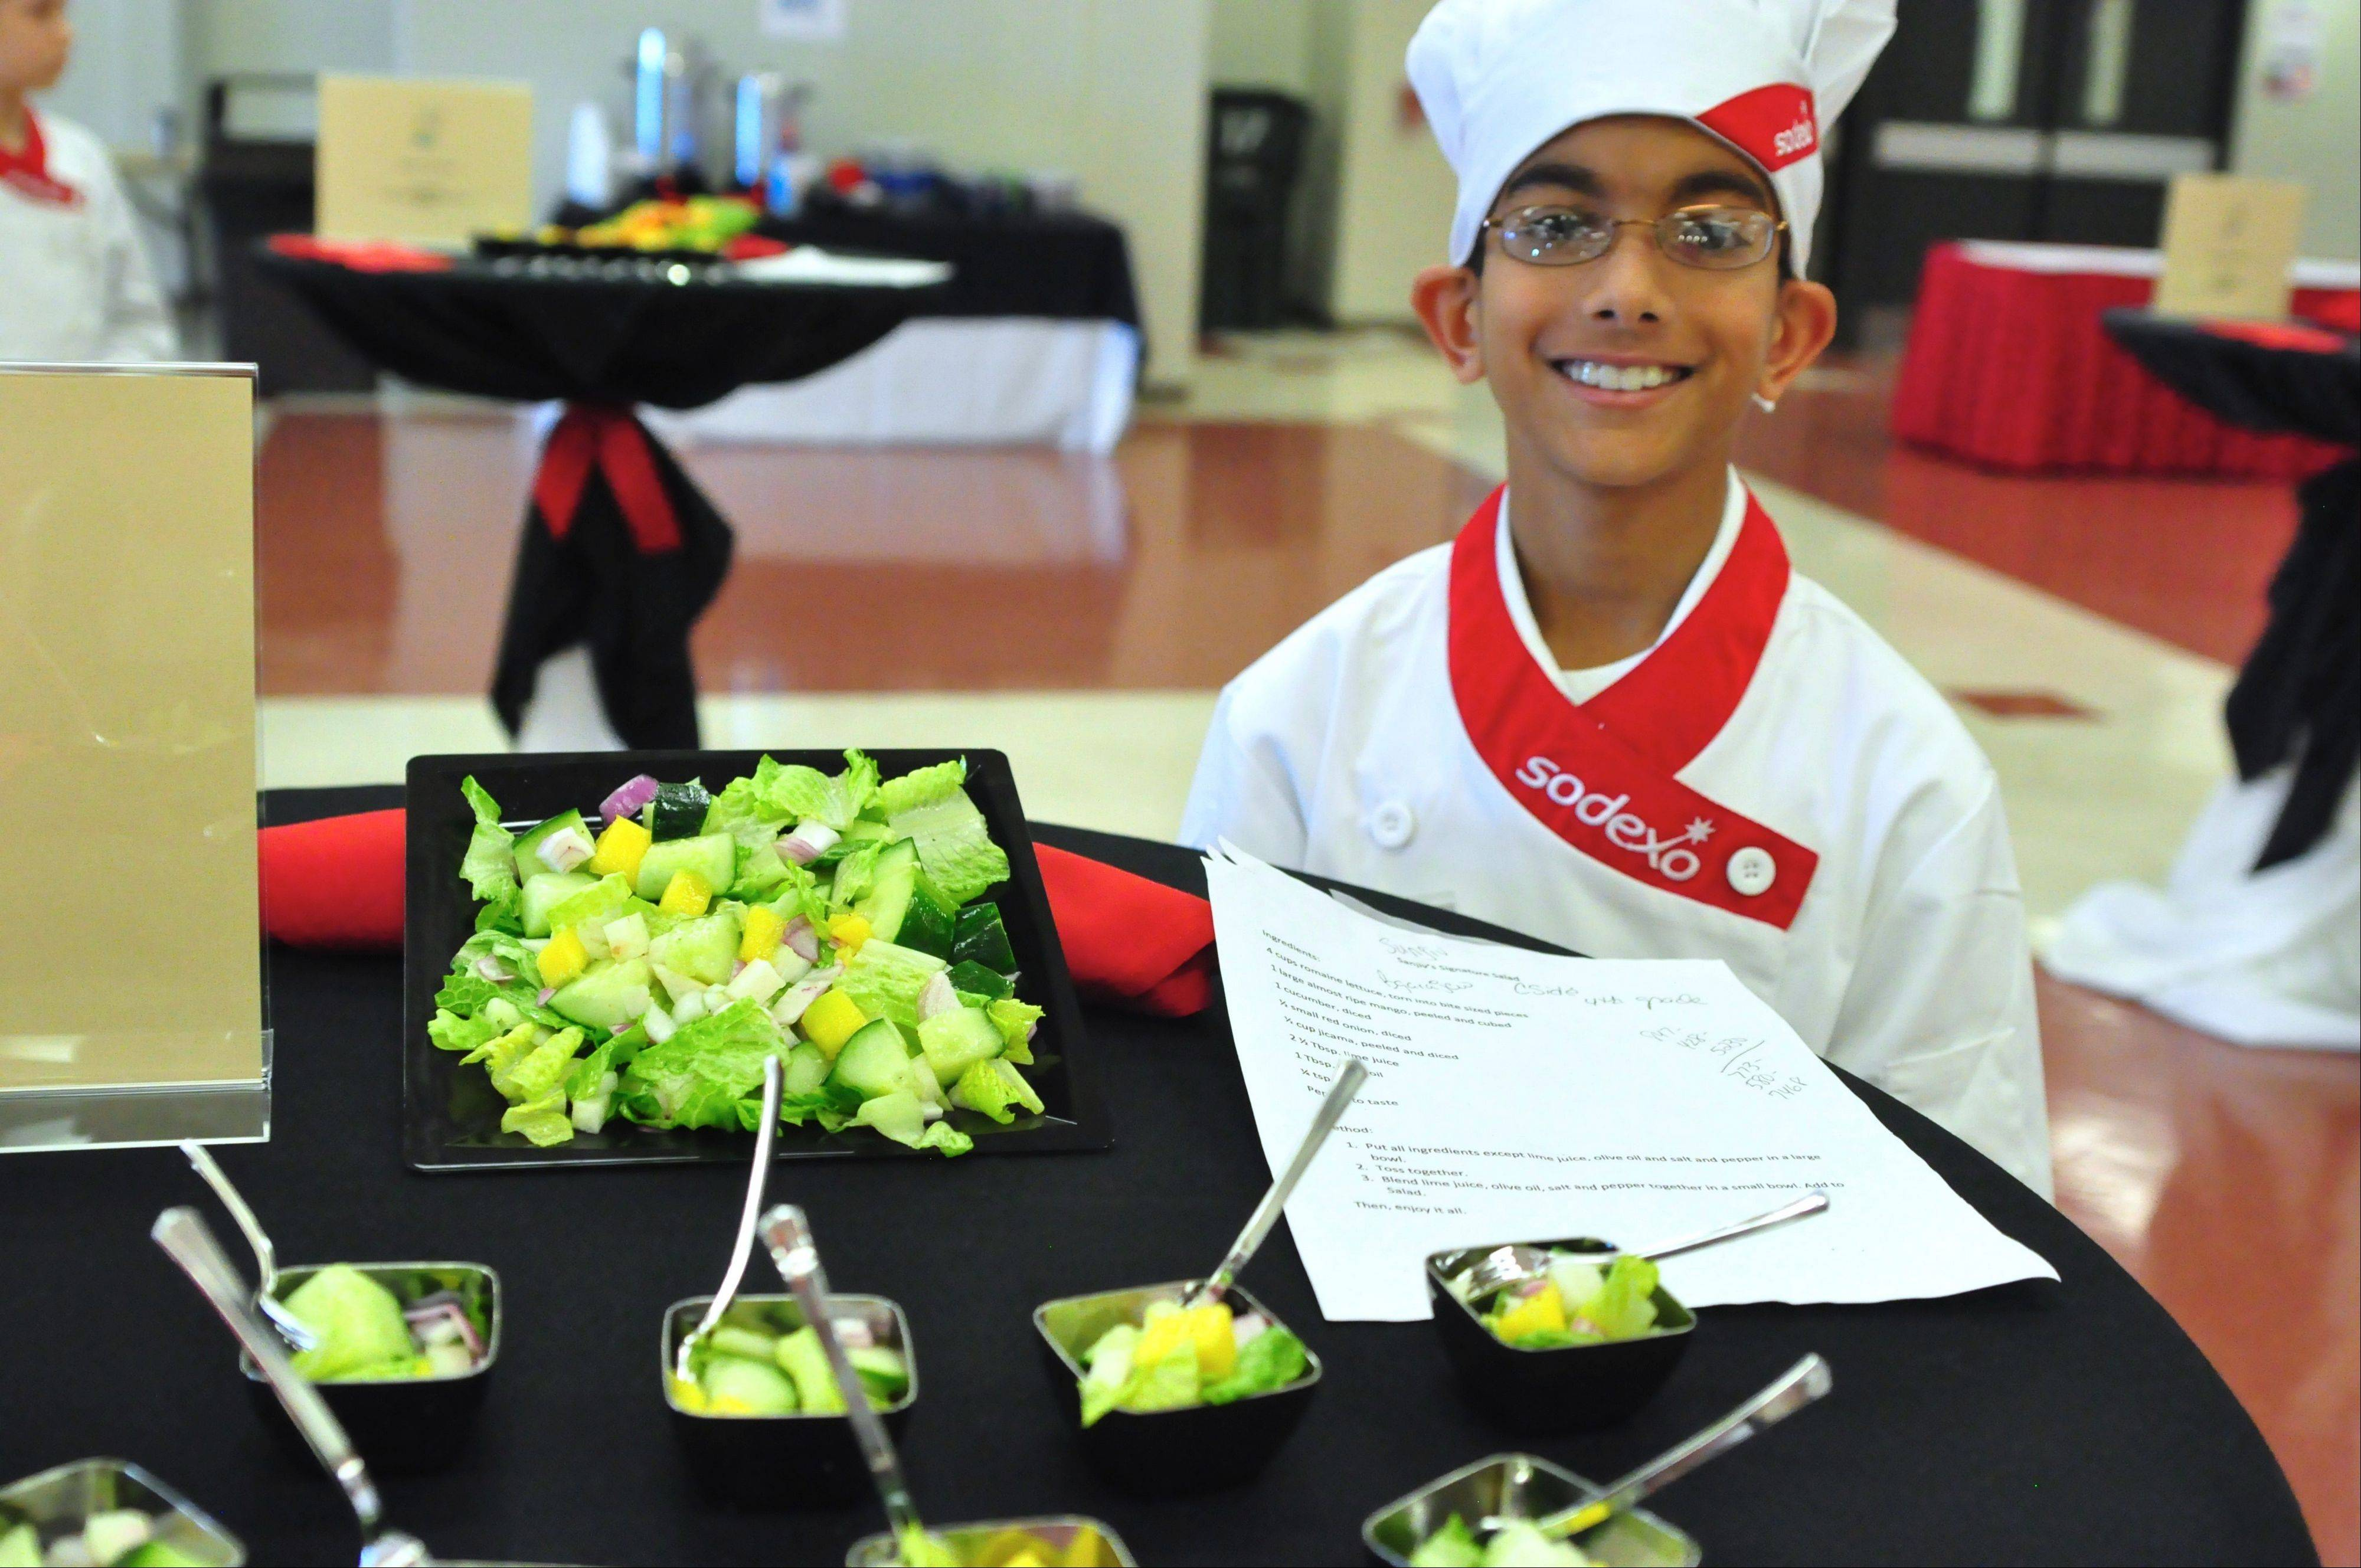 Sanjiv Bhogaraji, a fourth grader at Countryside Elementary School in Barrington, created the winning salad at Sodexo's Future Chefs Challenge.